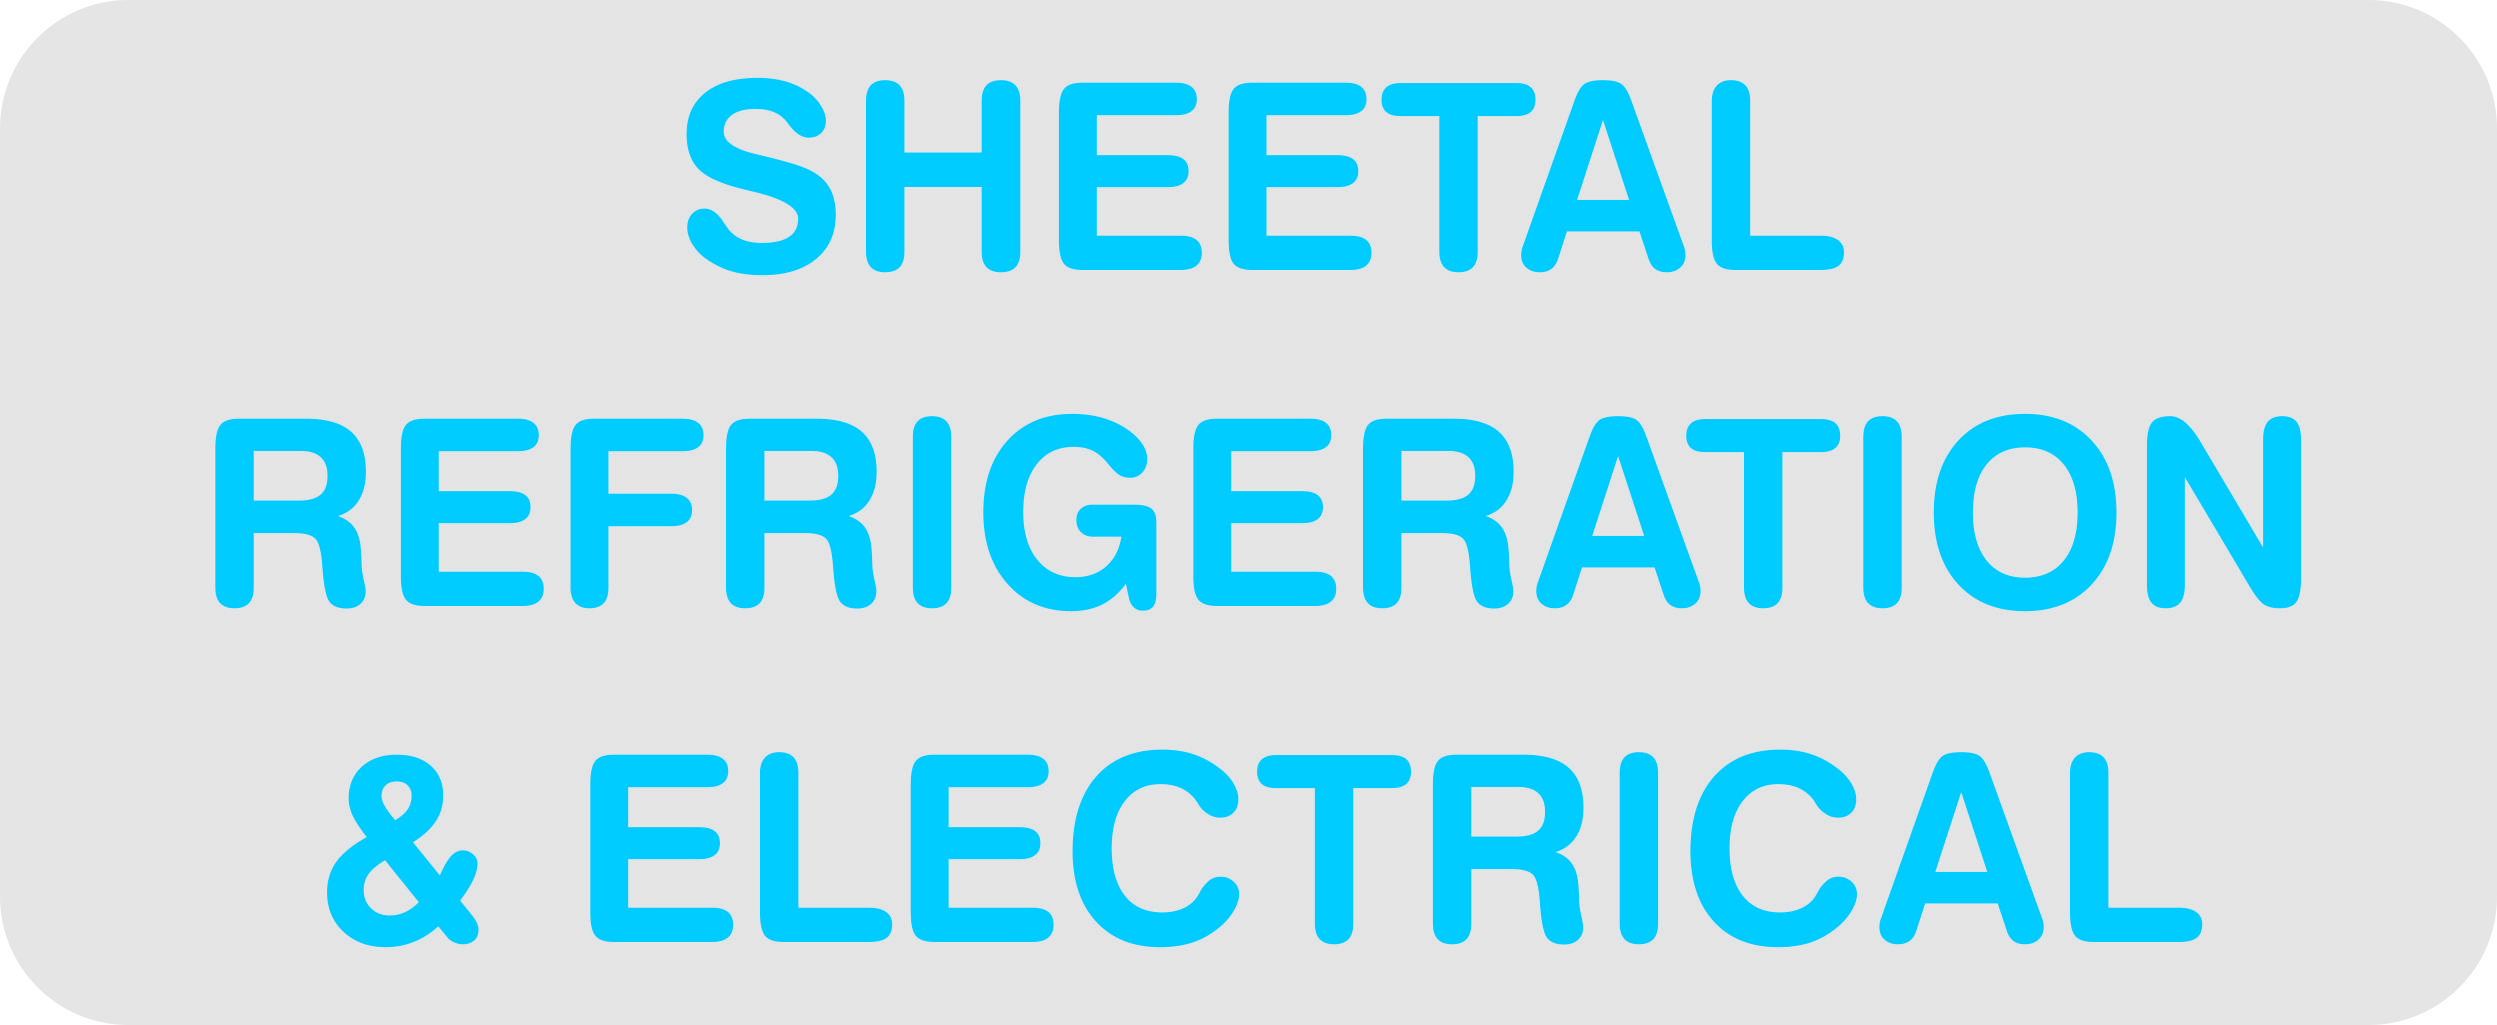 Sheetal Refrigeration & Electrical